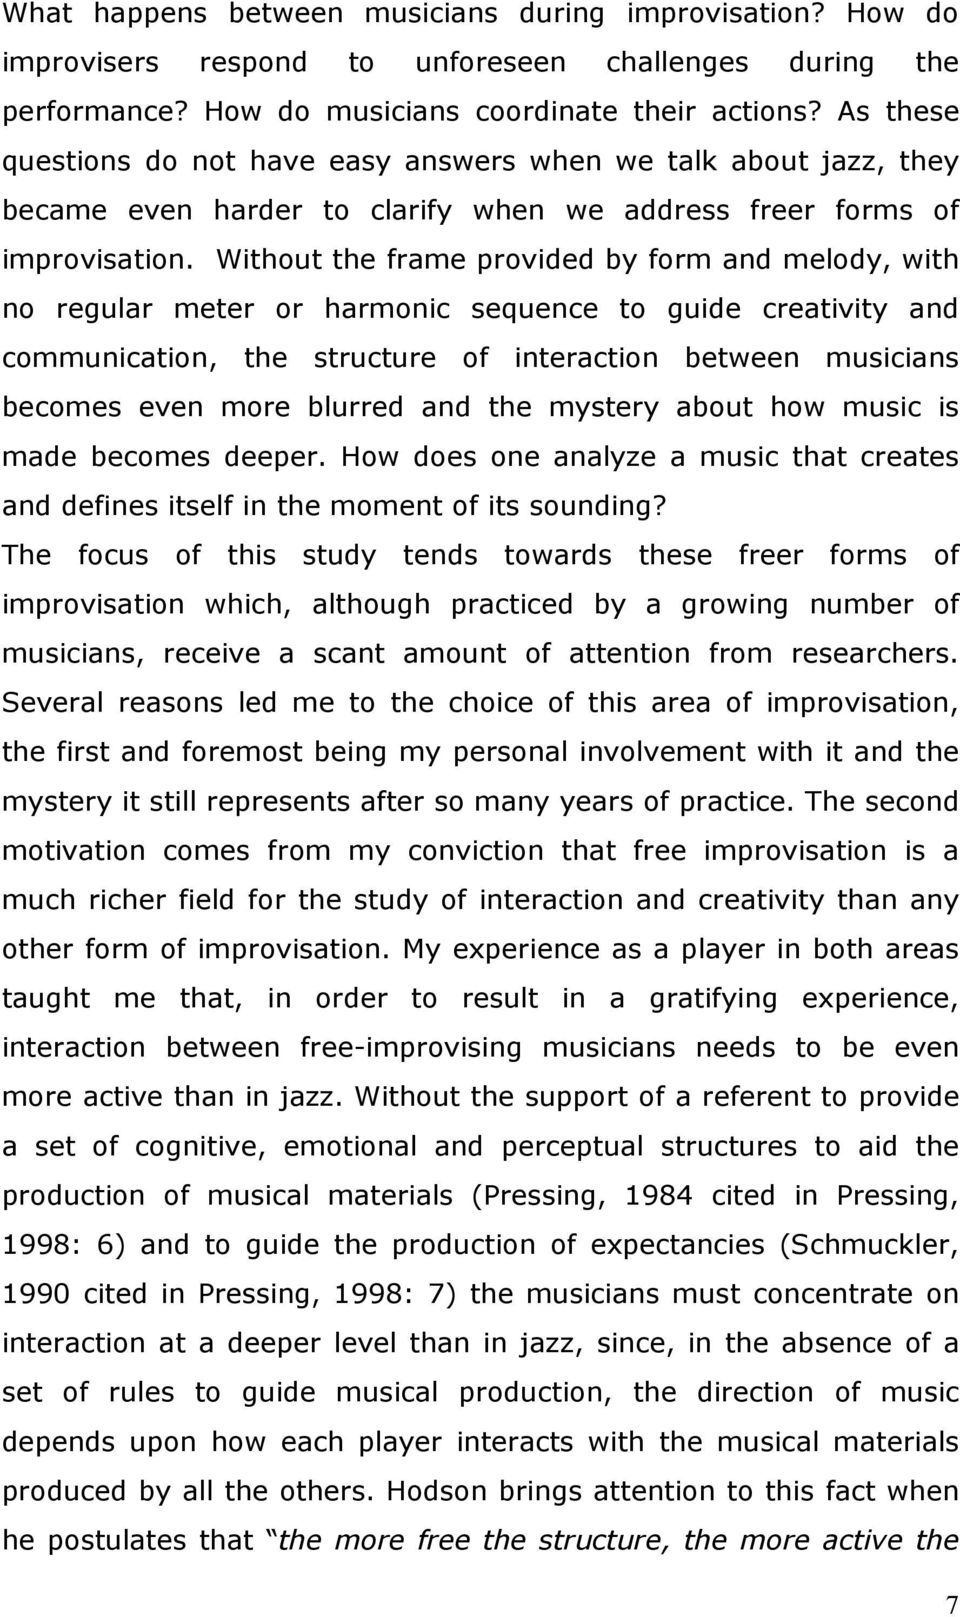 Without the frame provided by form and melody, with no regular meter or harmonic sequence to guide creativity and communication, the structure of interaction between musicians becomes even more